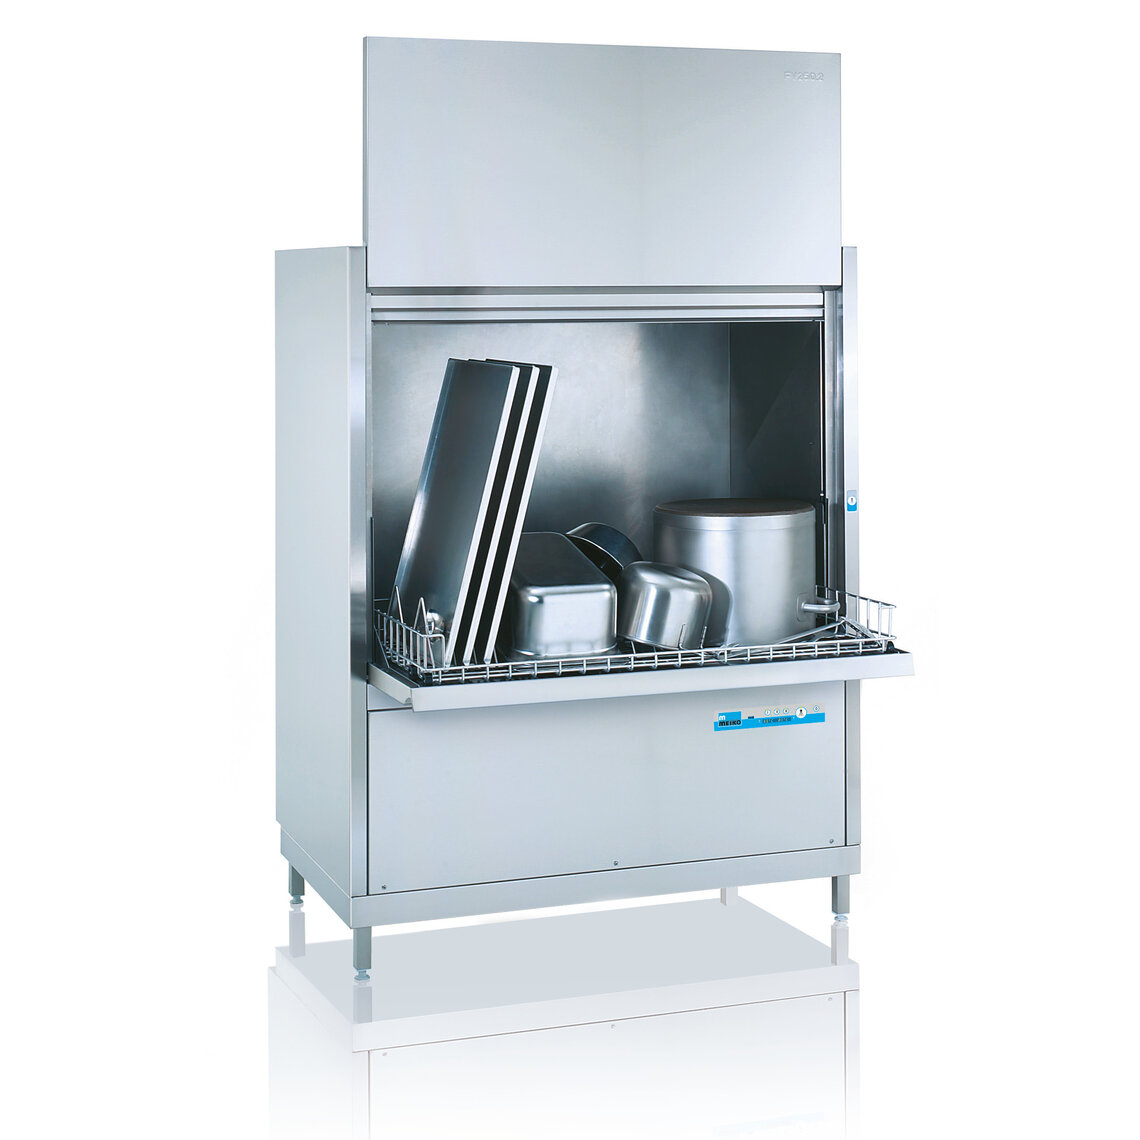 Professional dishwashers from MEIKO - Get clean pots, pans, utensils ...